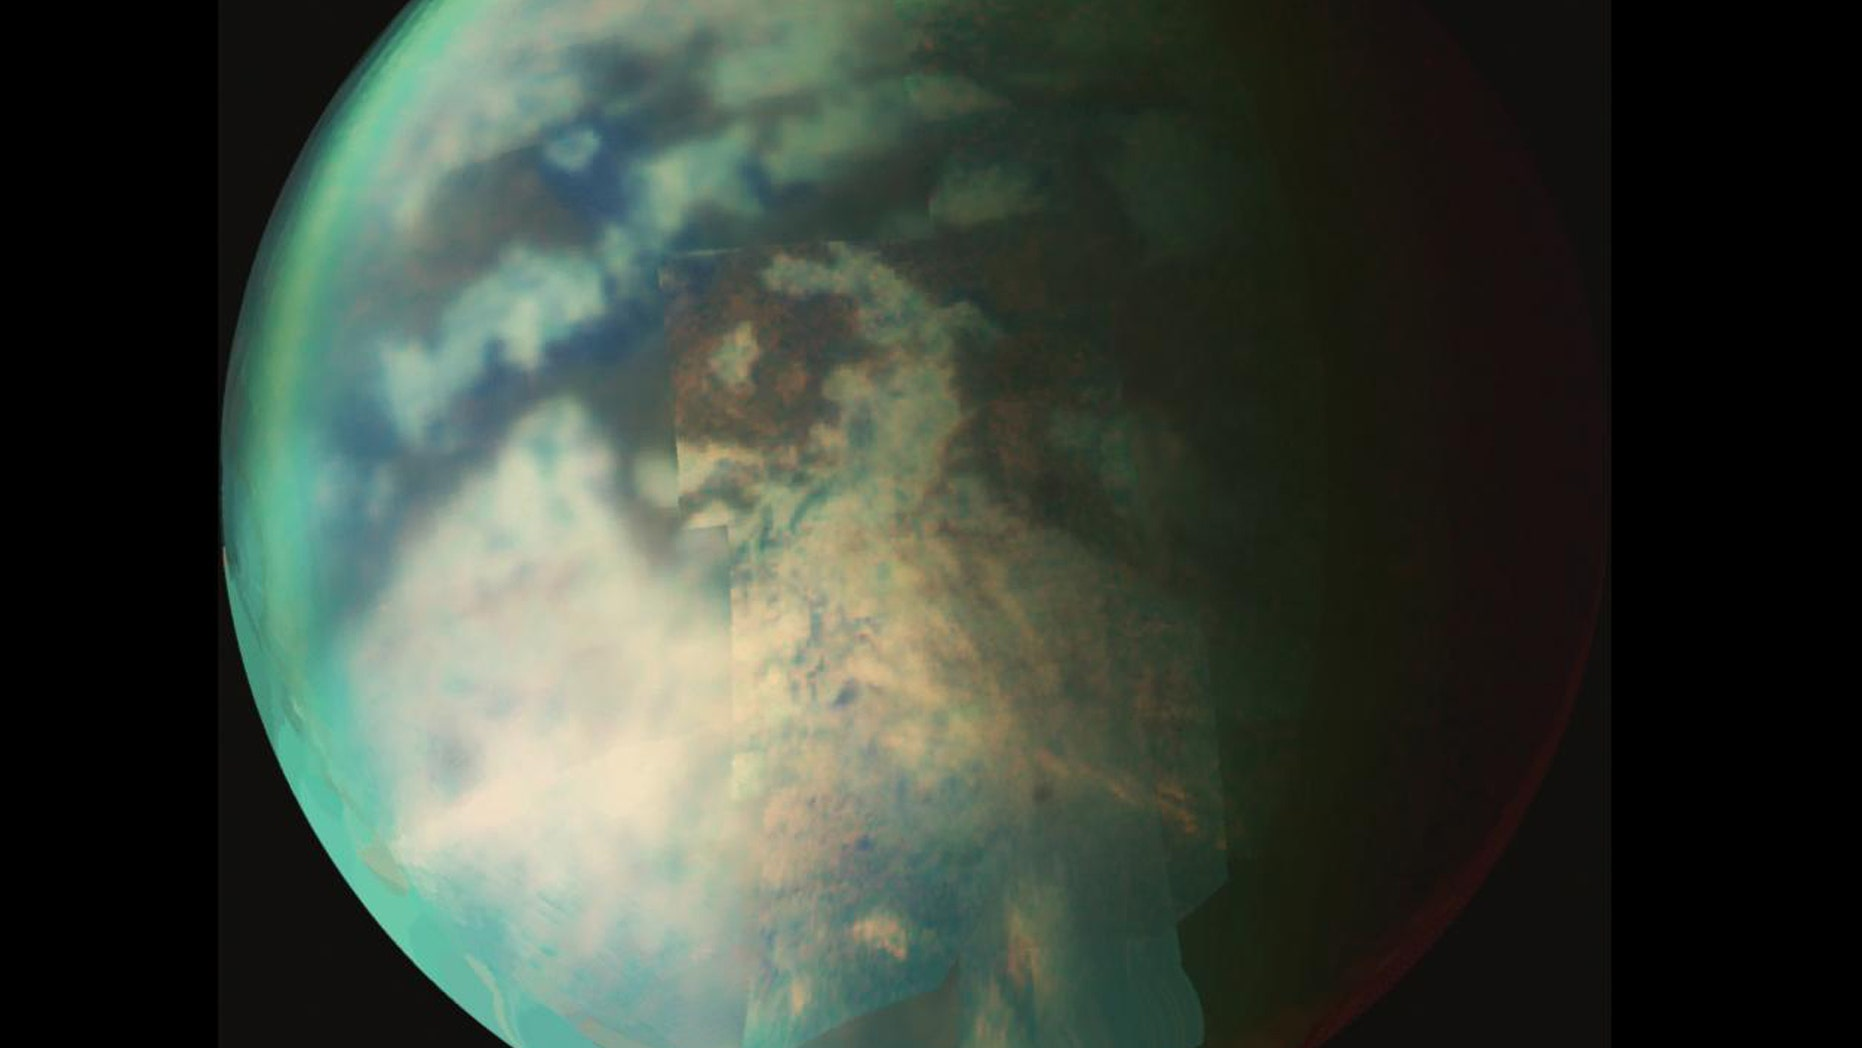 New research provides evidence of rainfall on the north pole of Titan, the largest of Saturn's moons, shown here. (Credit: NASA/JPL/University of Arizona)